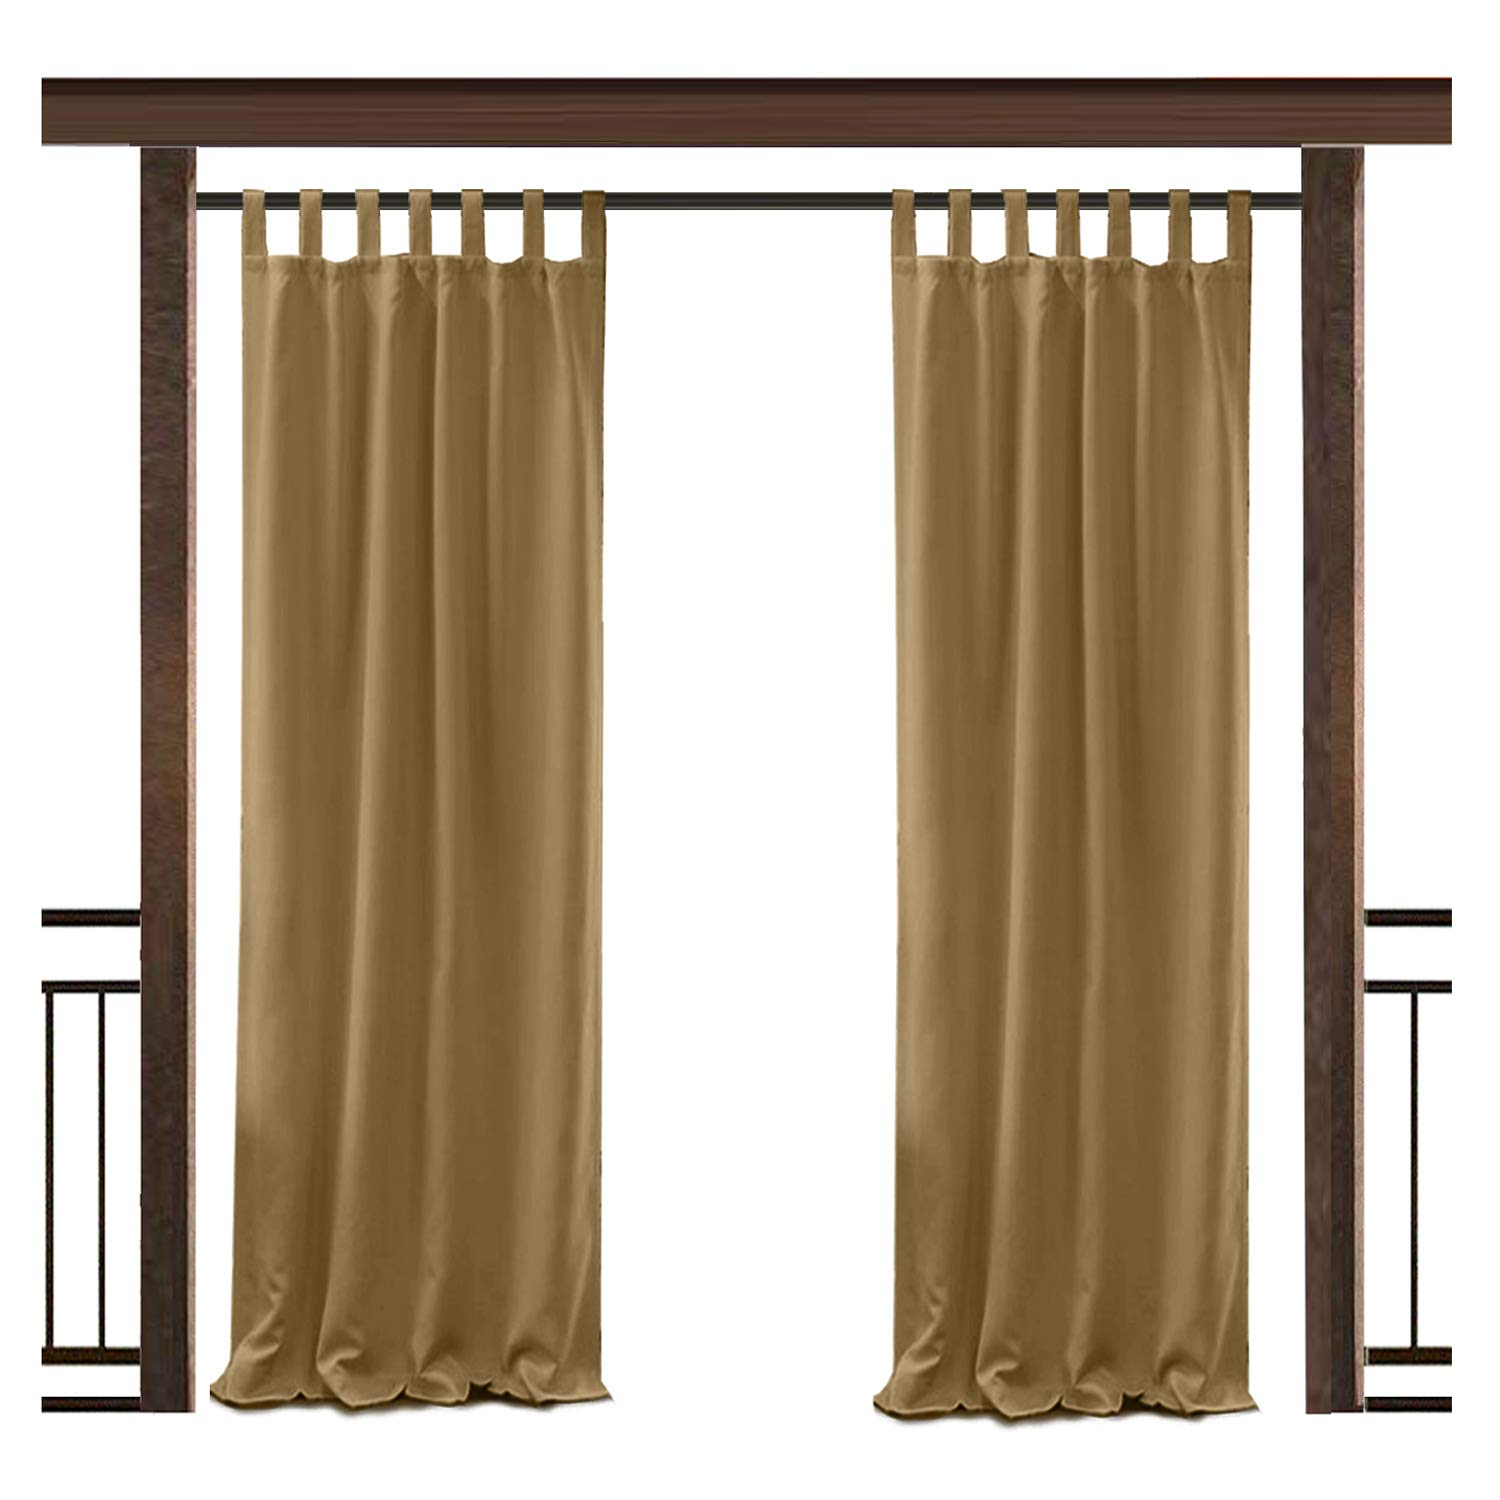 TWOPAGES Outdoor Waterproof Curtain Wheat Tab Top Drape, 50'' W x 72'' L for Front Porch Pergola Cabana Covered Patio Gazebo Dock Beach Home (1 Panel)